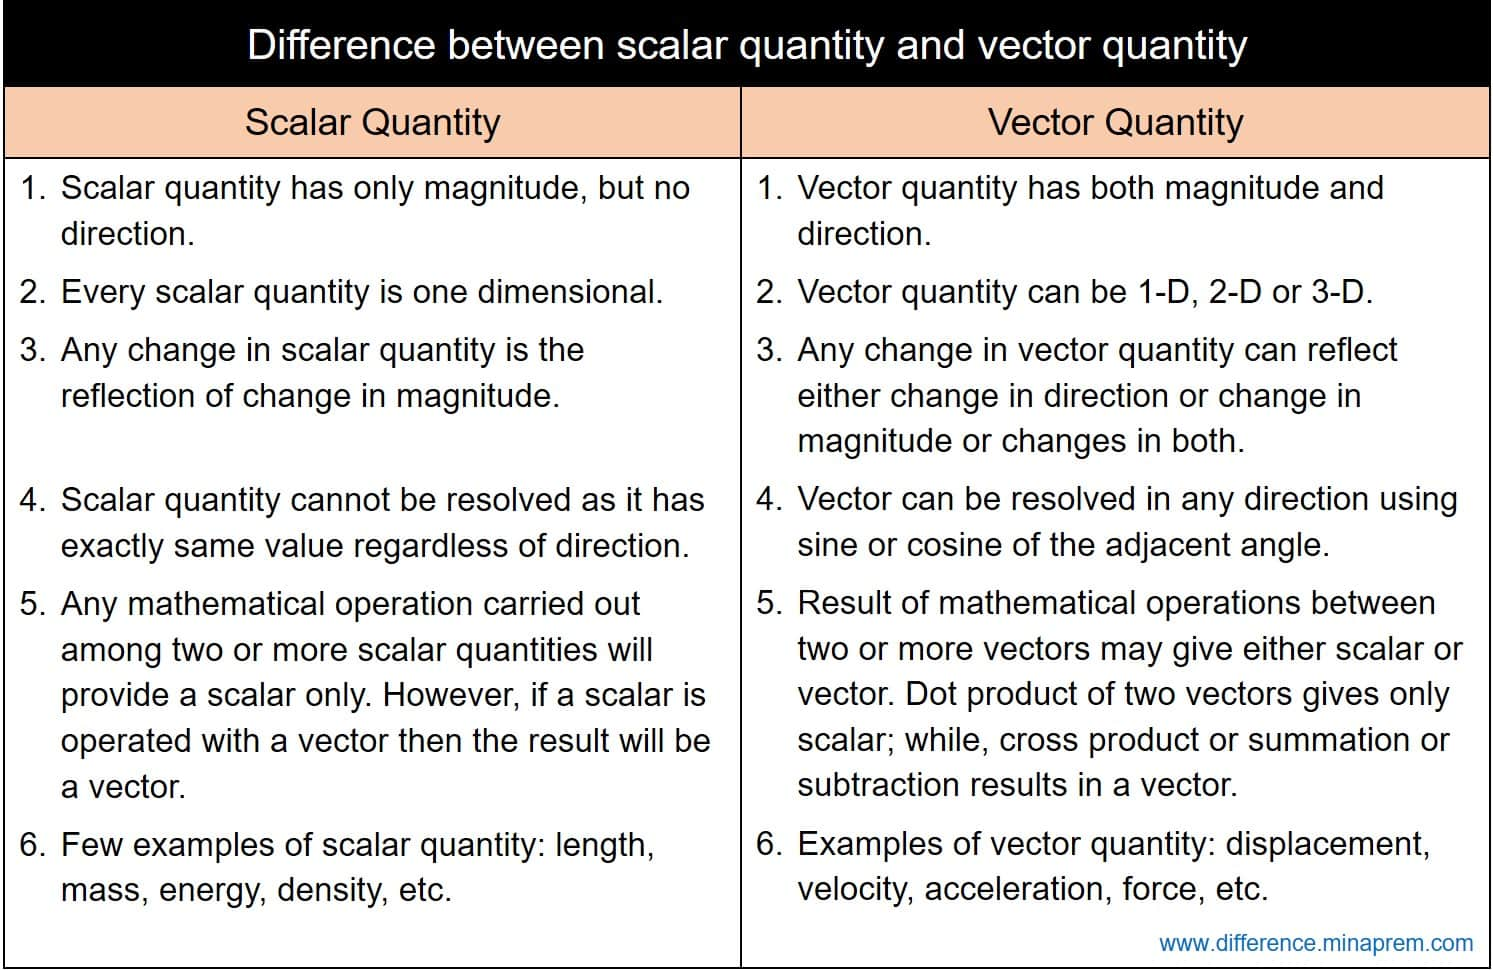 difference between scalar quantity and vector quantity  difference.minaprem.com